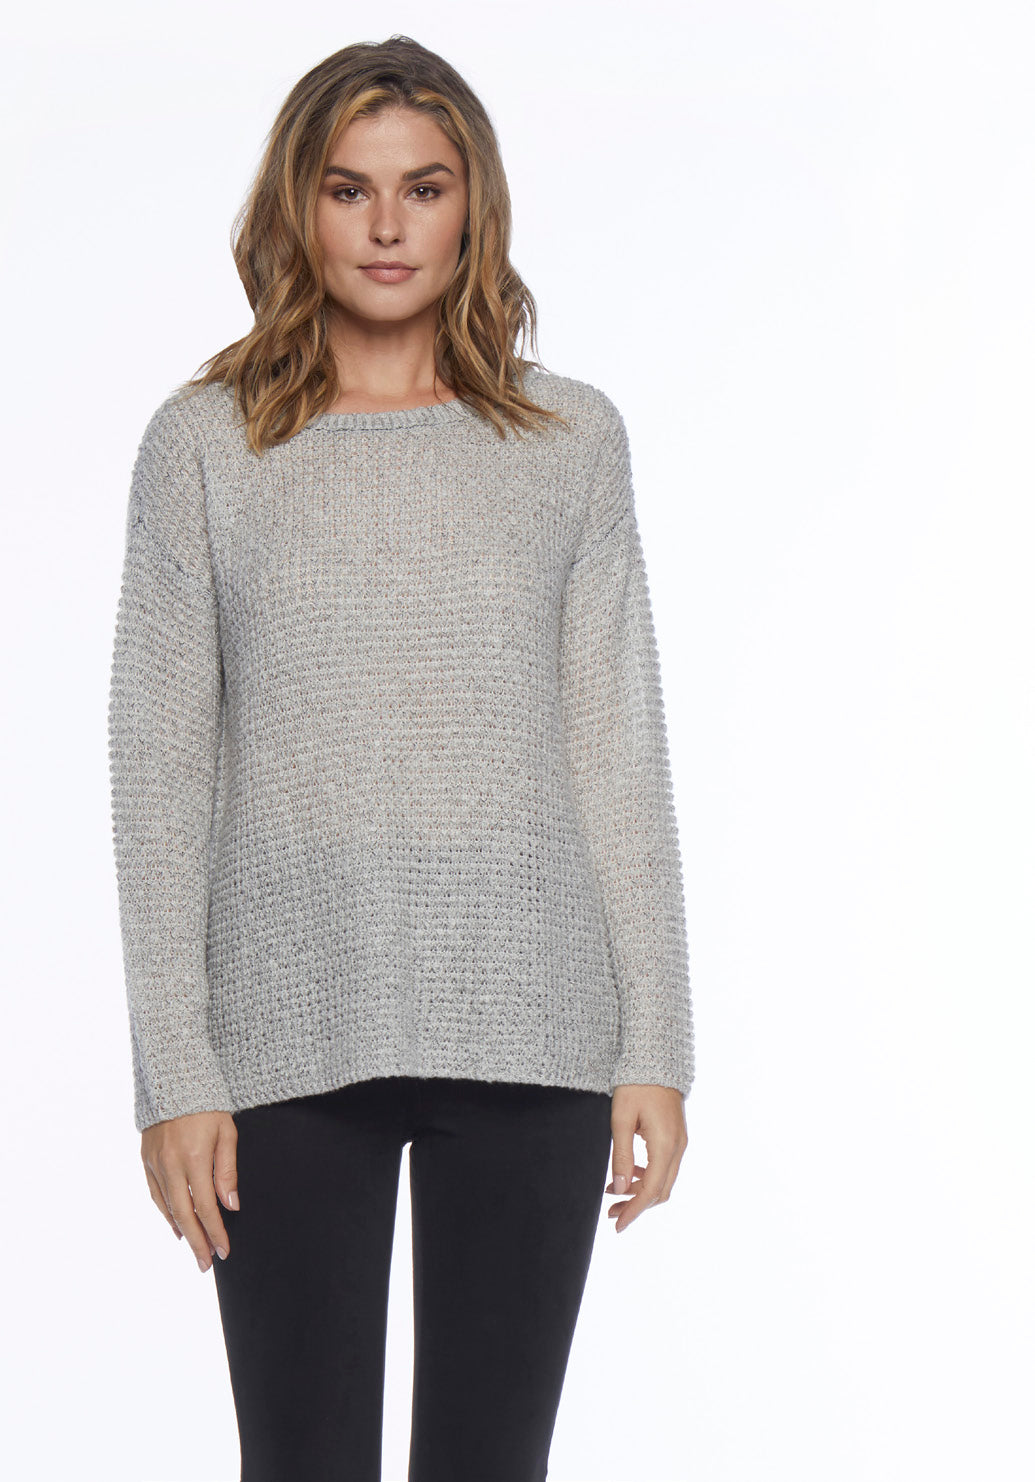 Witierney Sweater